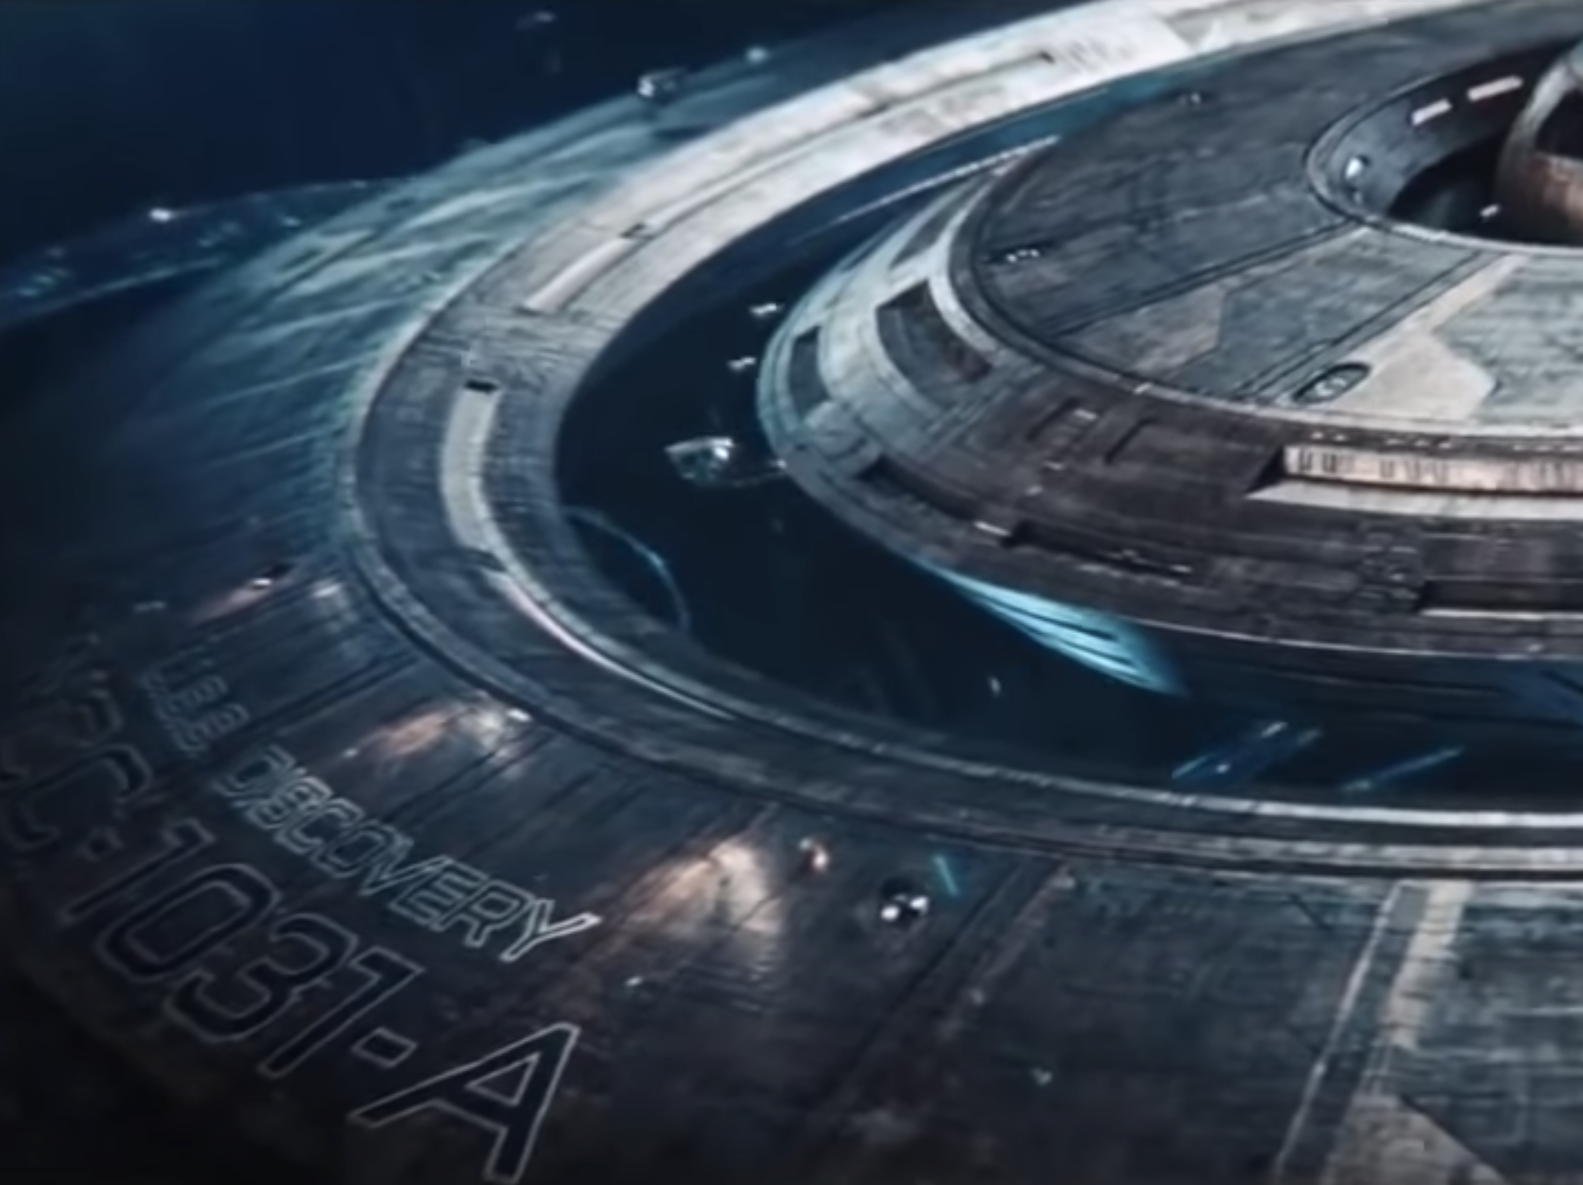 See The Discovery-A, Star Trek: Discovery's New Ship